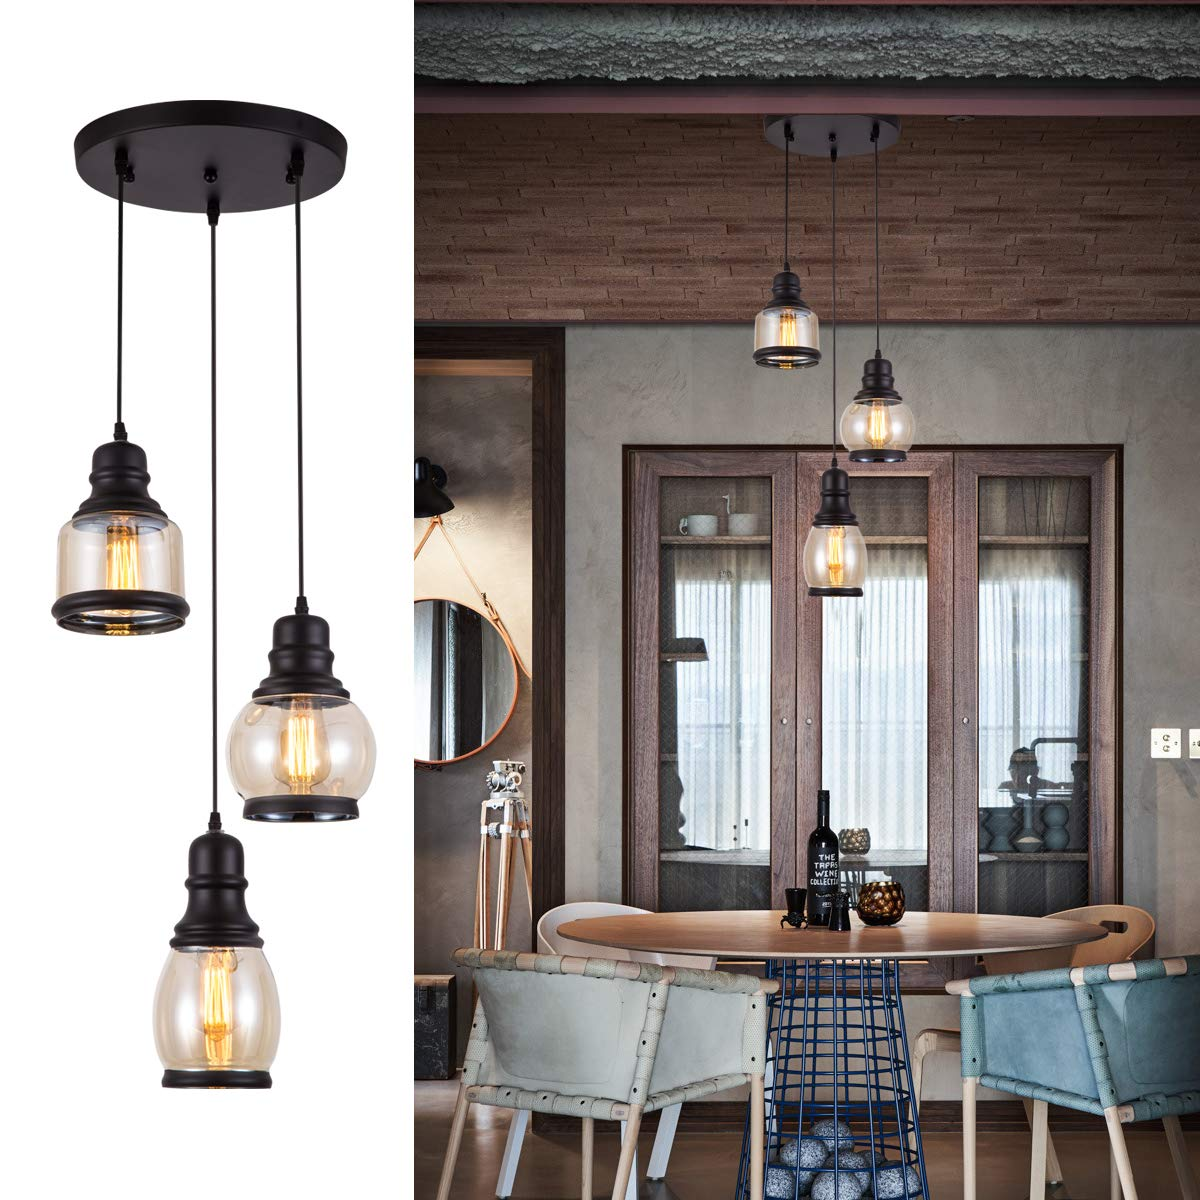 Pendant Light with Tawny Glass Jar Shade Matte Black 3-Lights Adjustable Hanging Lighting Fixture, Industrial Antique Traditional Pendant Lamp for Home, Kitchen Island, Dining Room, Foyer, Farmhouse